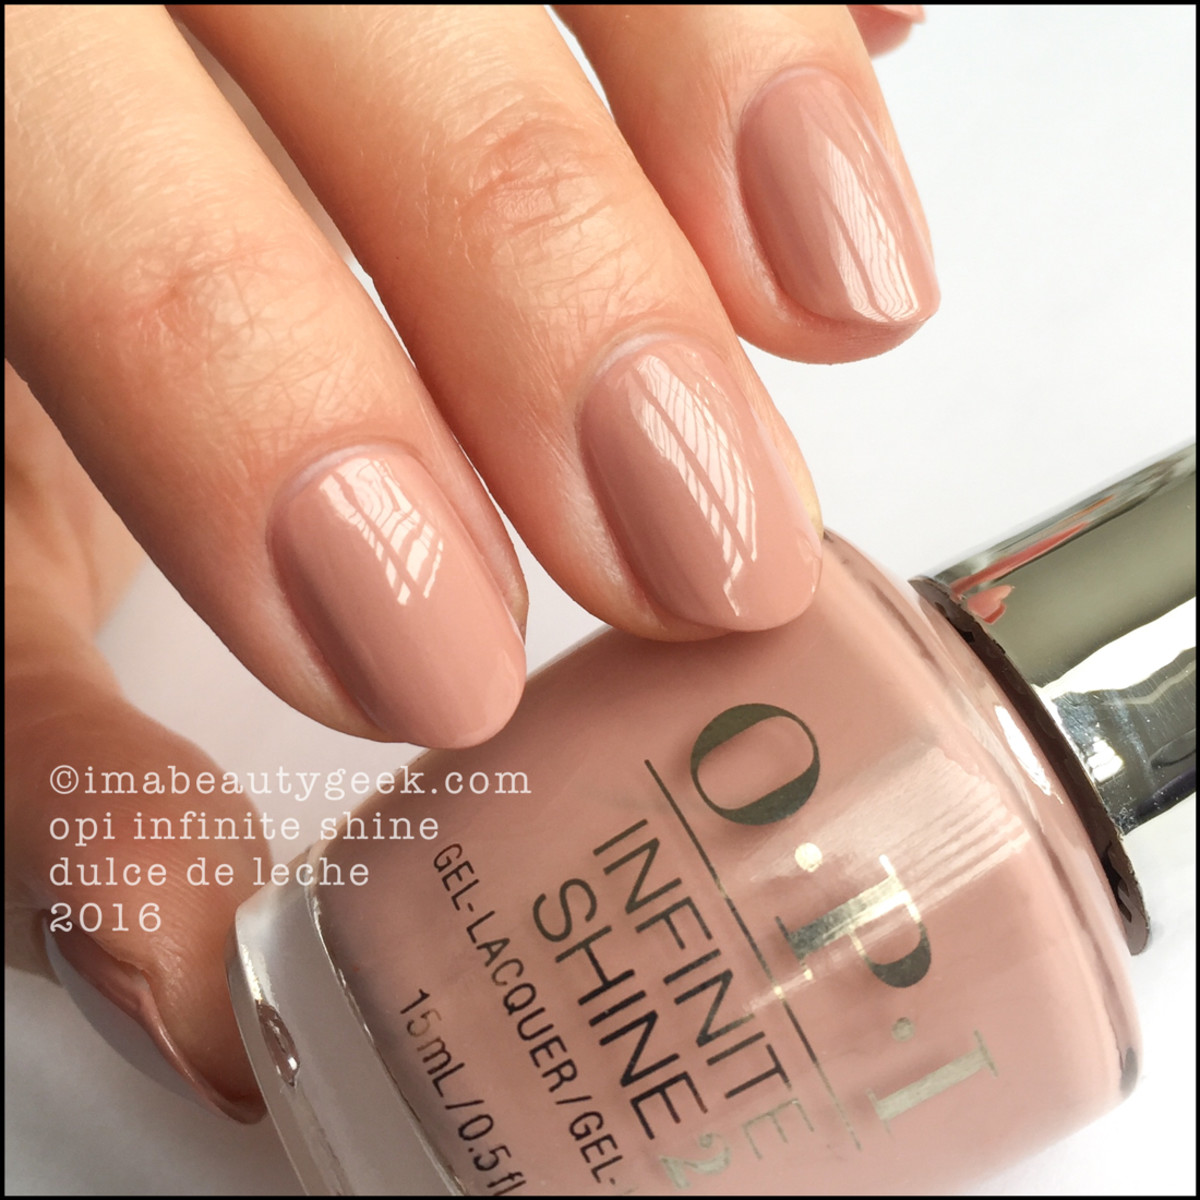 OPI Infinite Shine Dulce De Leche_OPI Infinite Shine Iconic Collection 2016